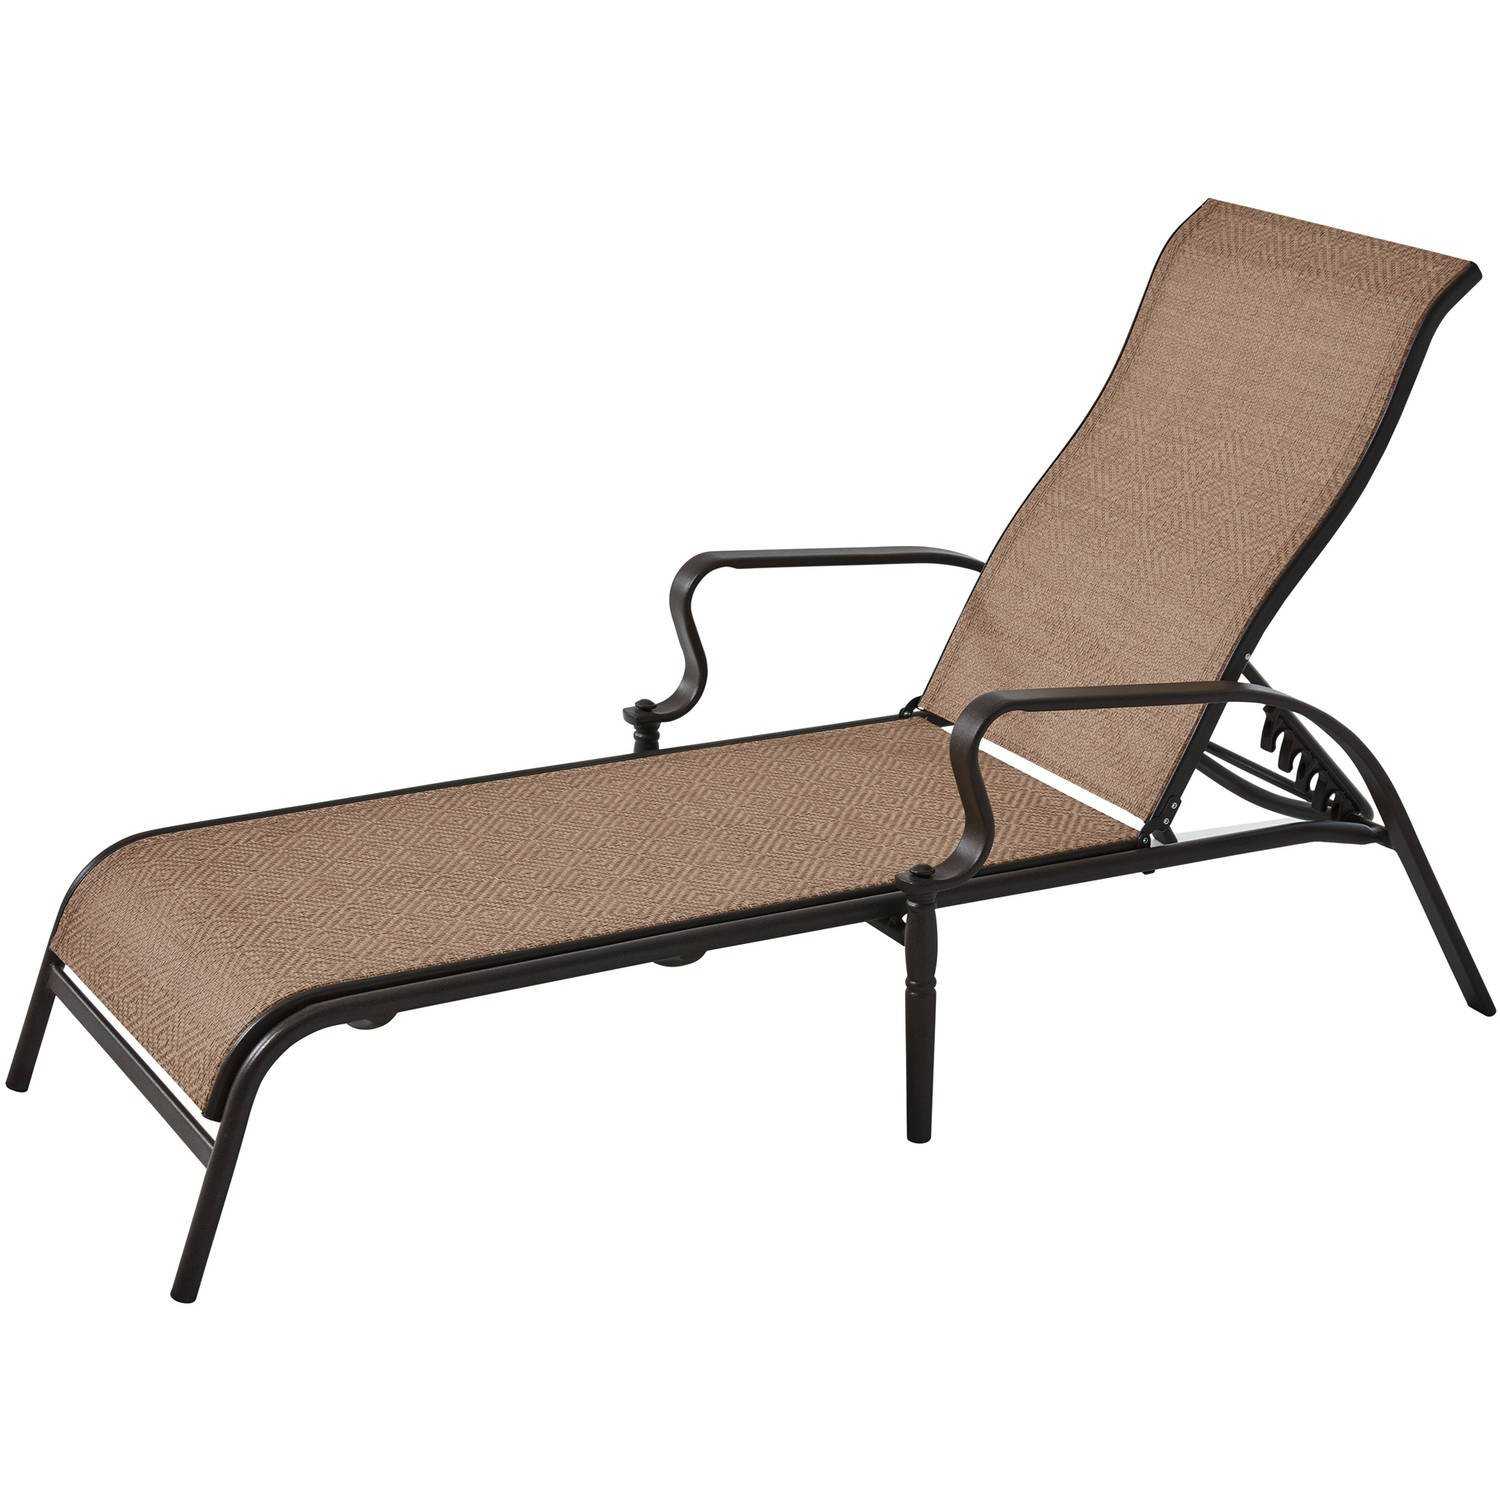 Mainstay Wesley Creek Outdoor Sling Chaise Lounge Brown